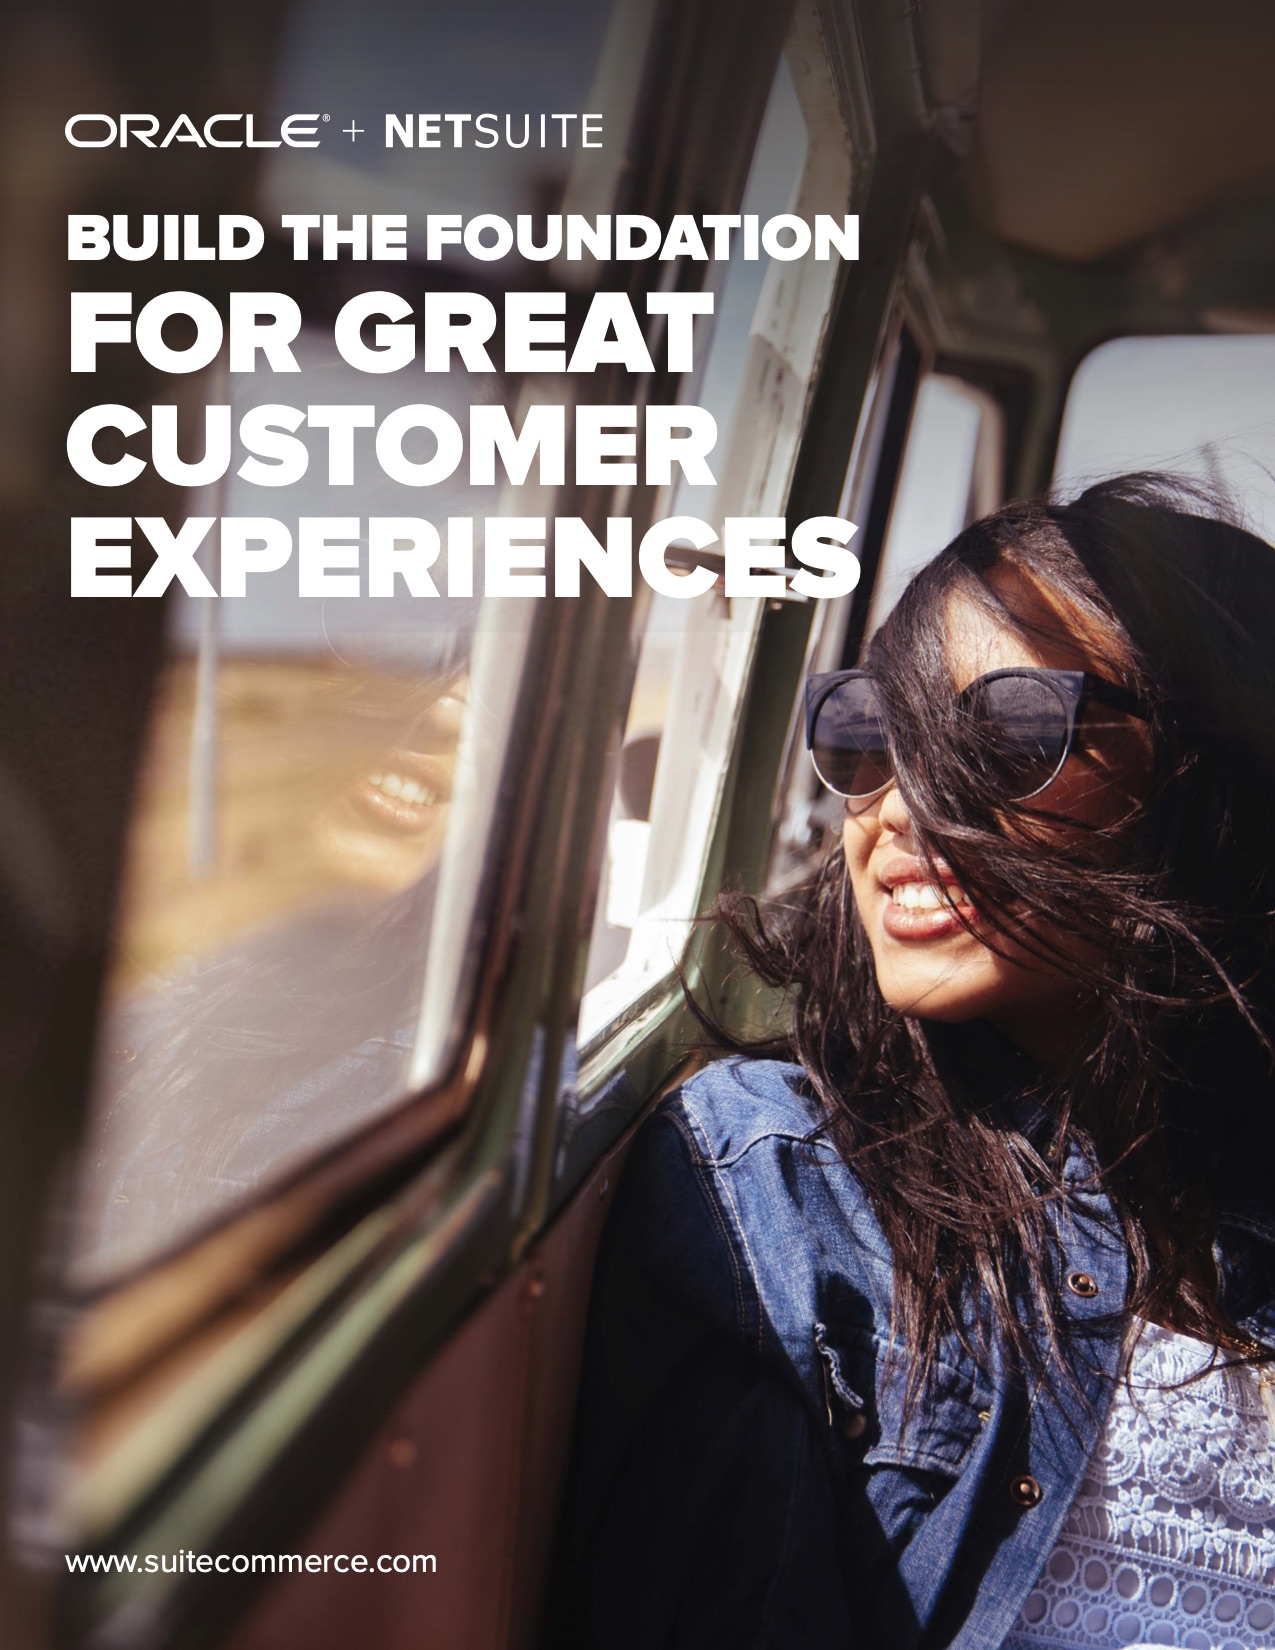 Whitepaper: Build the Foundation for Great Customer Experiences